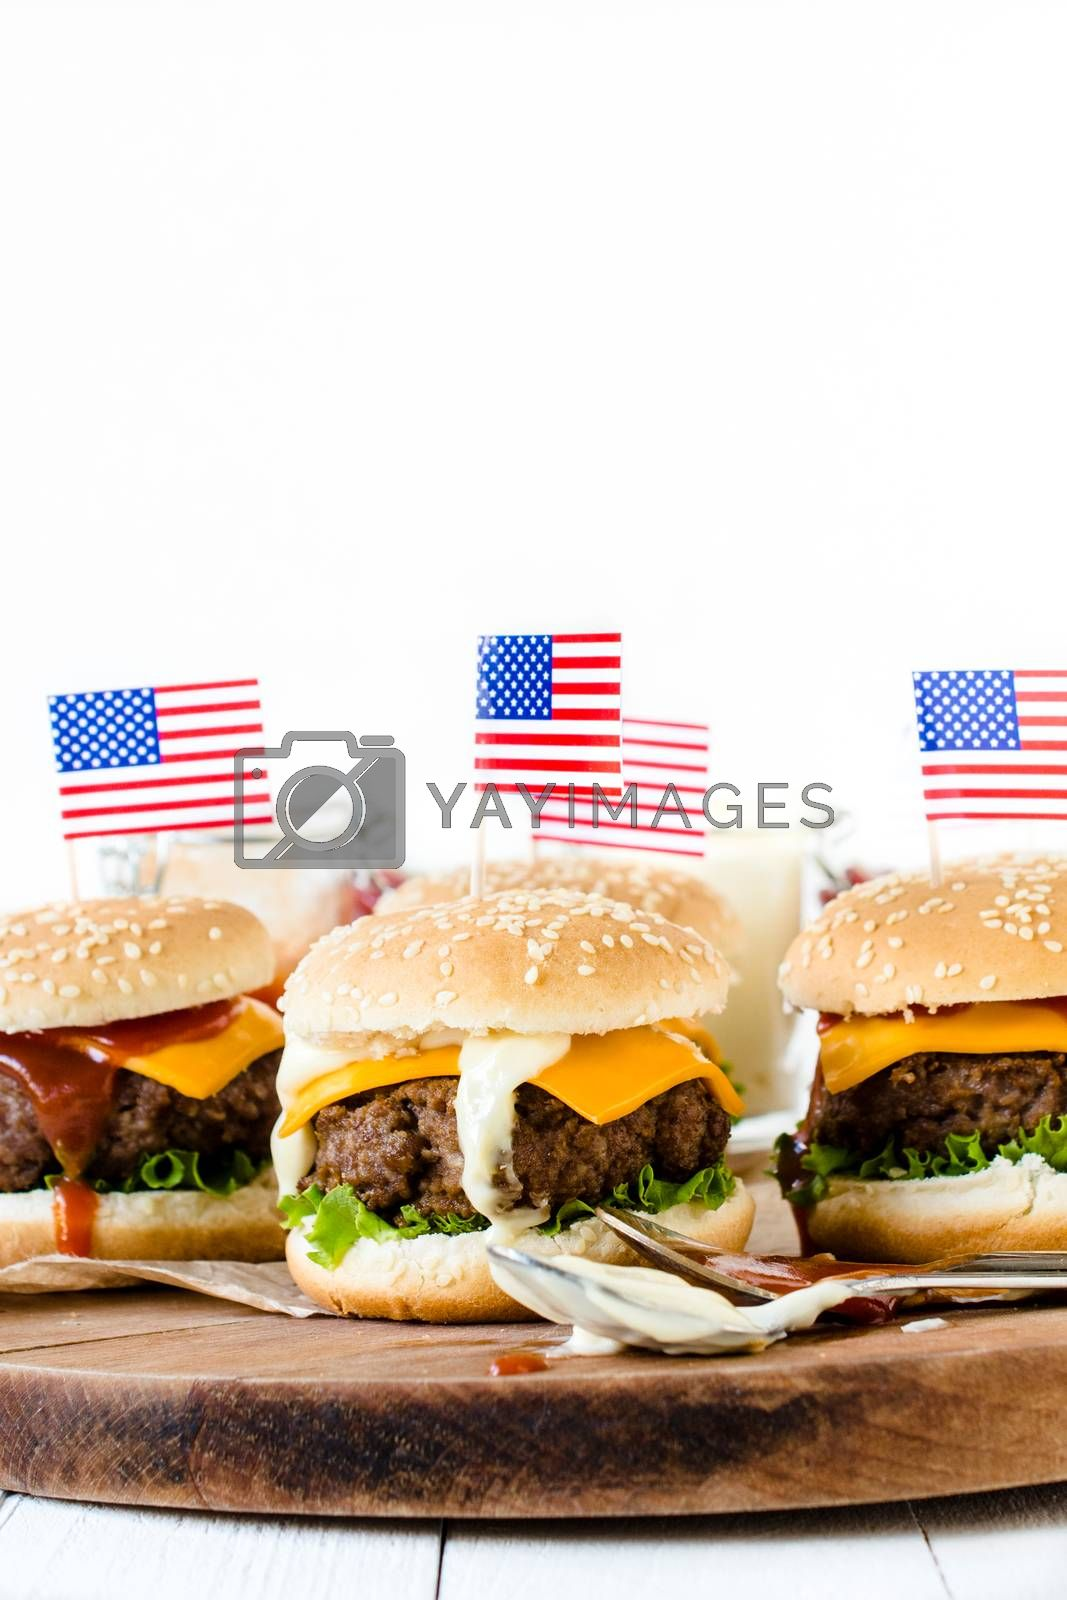 American cuisine by badmanproduction